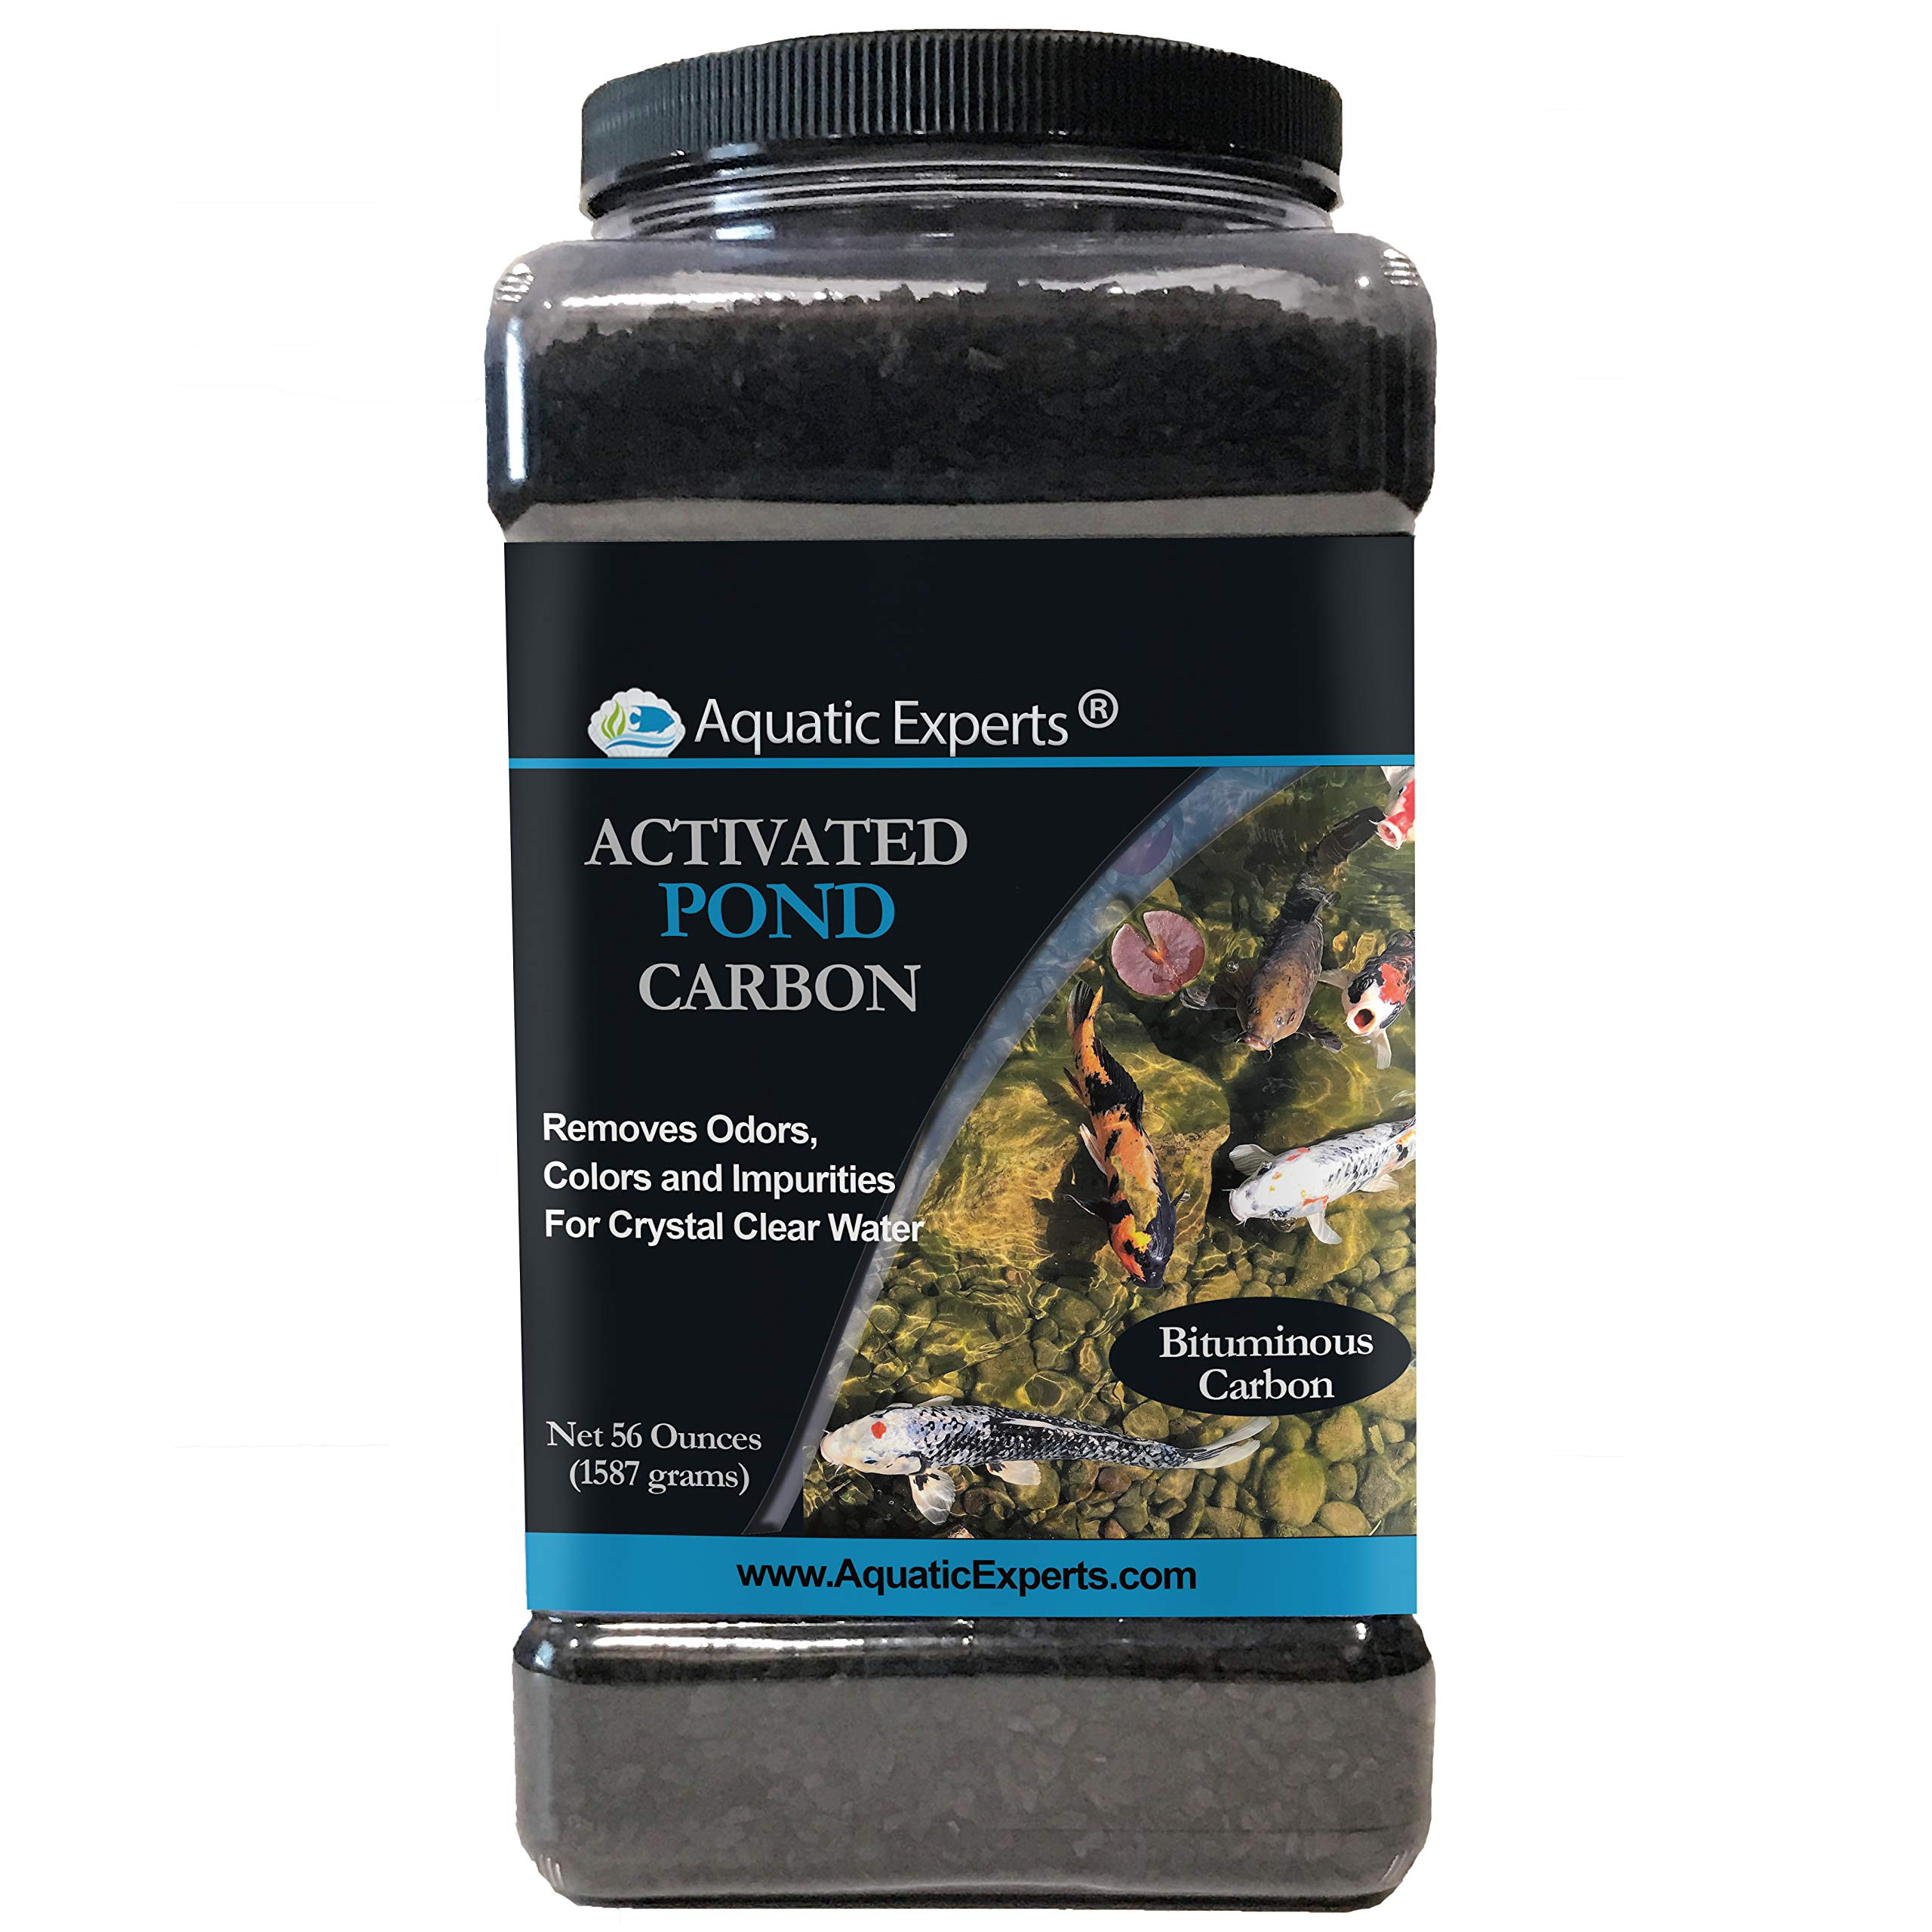 Aquatic Experts Activated Koi Pond Filter Carbon Charcoal - Remove Odors and Discoloration with 56 Ounce Bulk Container for Outdoor Water Gardens USA by Aquatic Experts